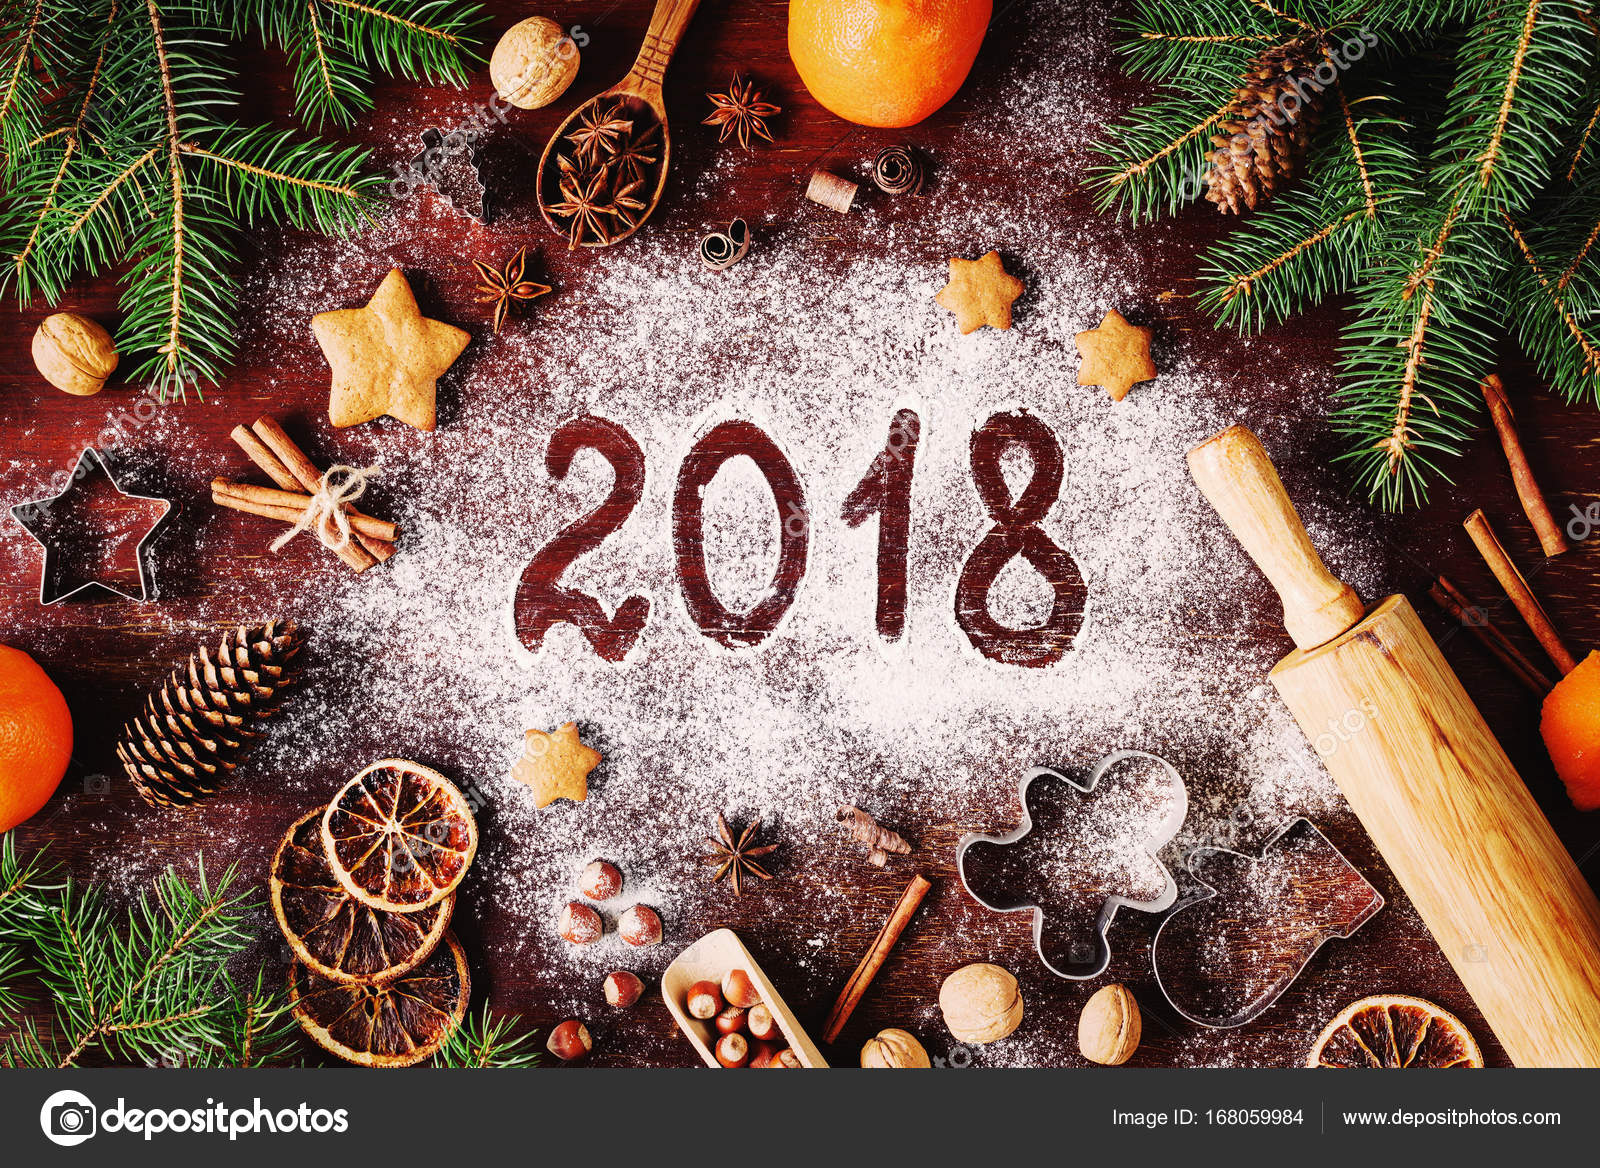 2018 happy new year merry christmas decorations background stock photo